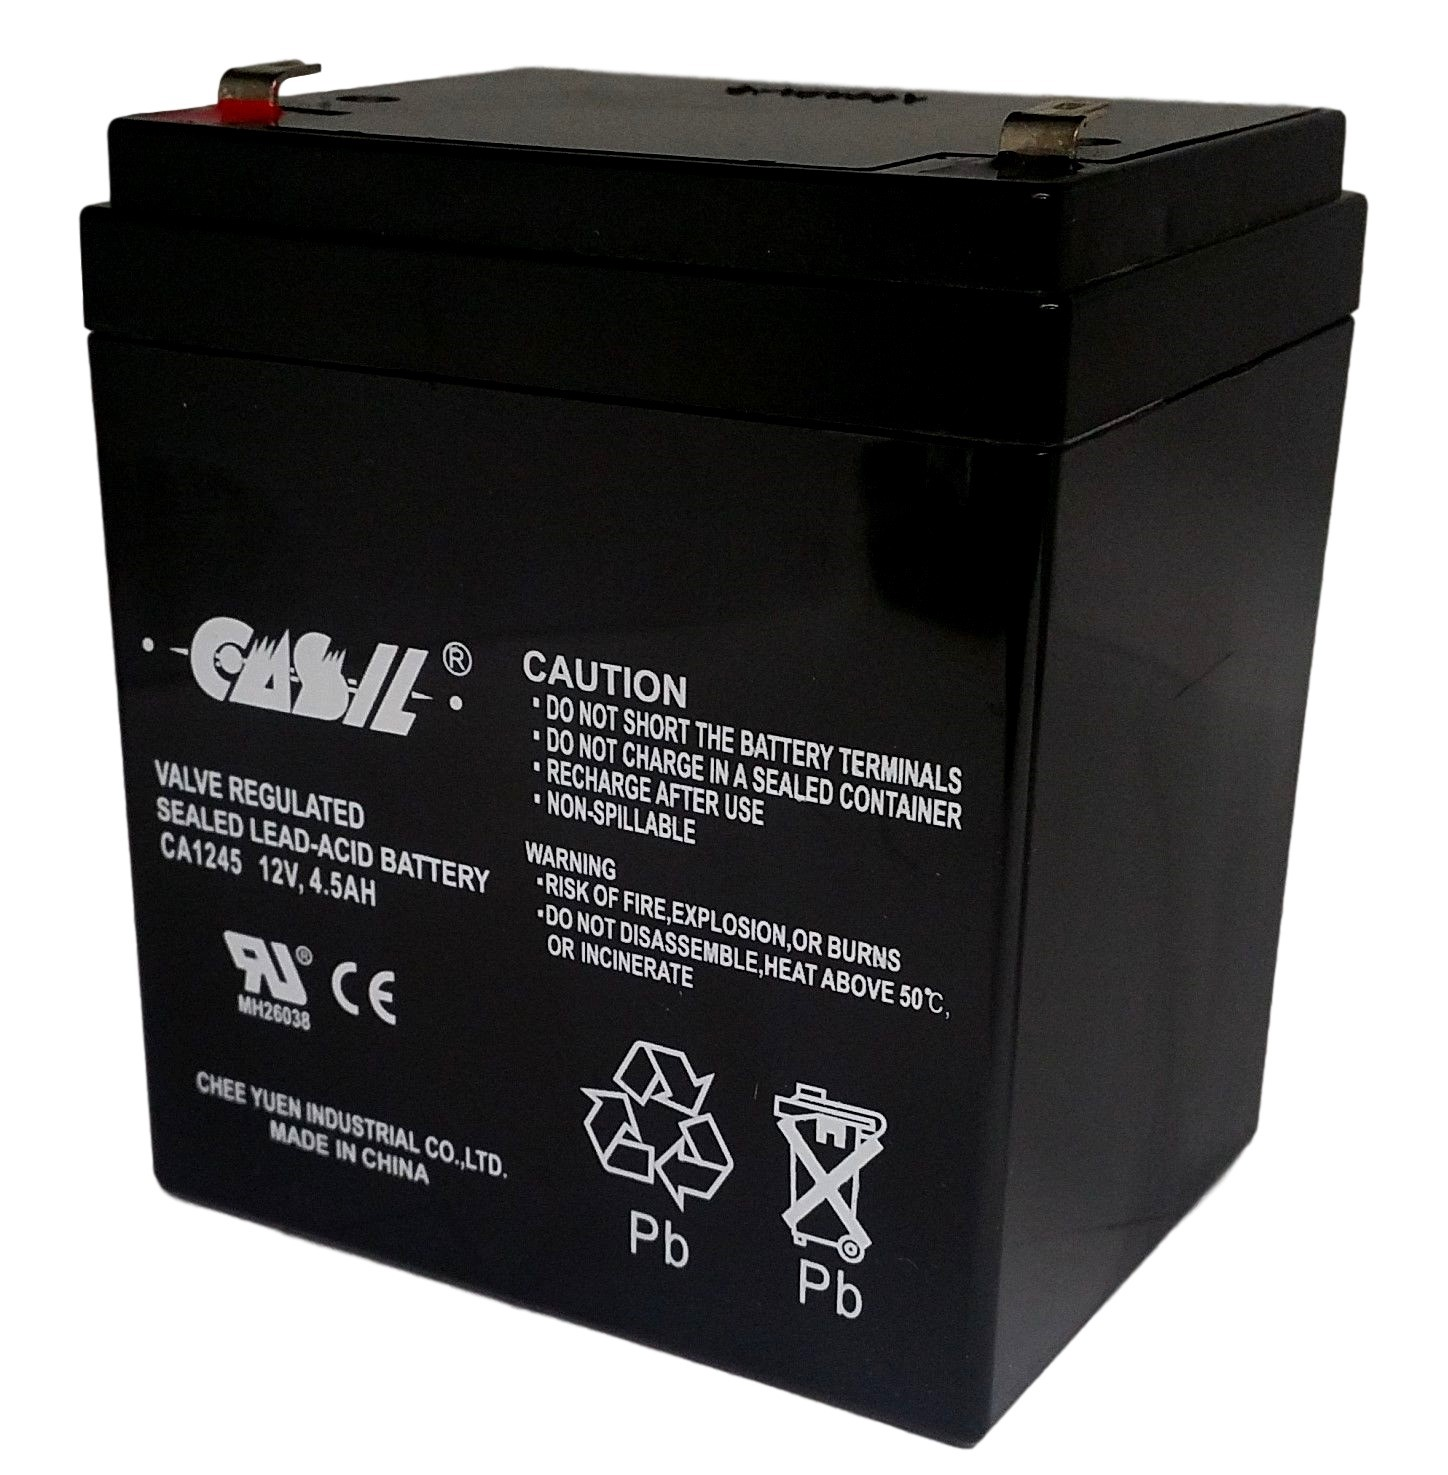 casil 12v replacement battery for liftmaster 3850. Black Bedroom Furniture Sets. Home Design Ideas